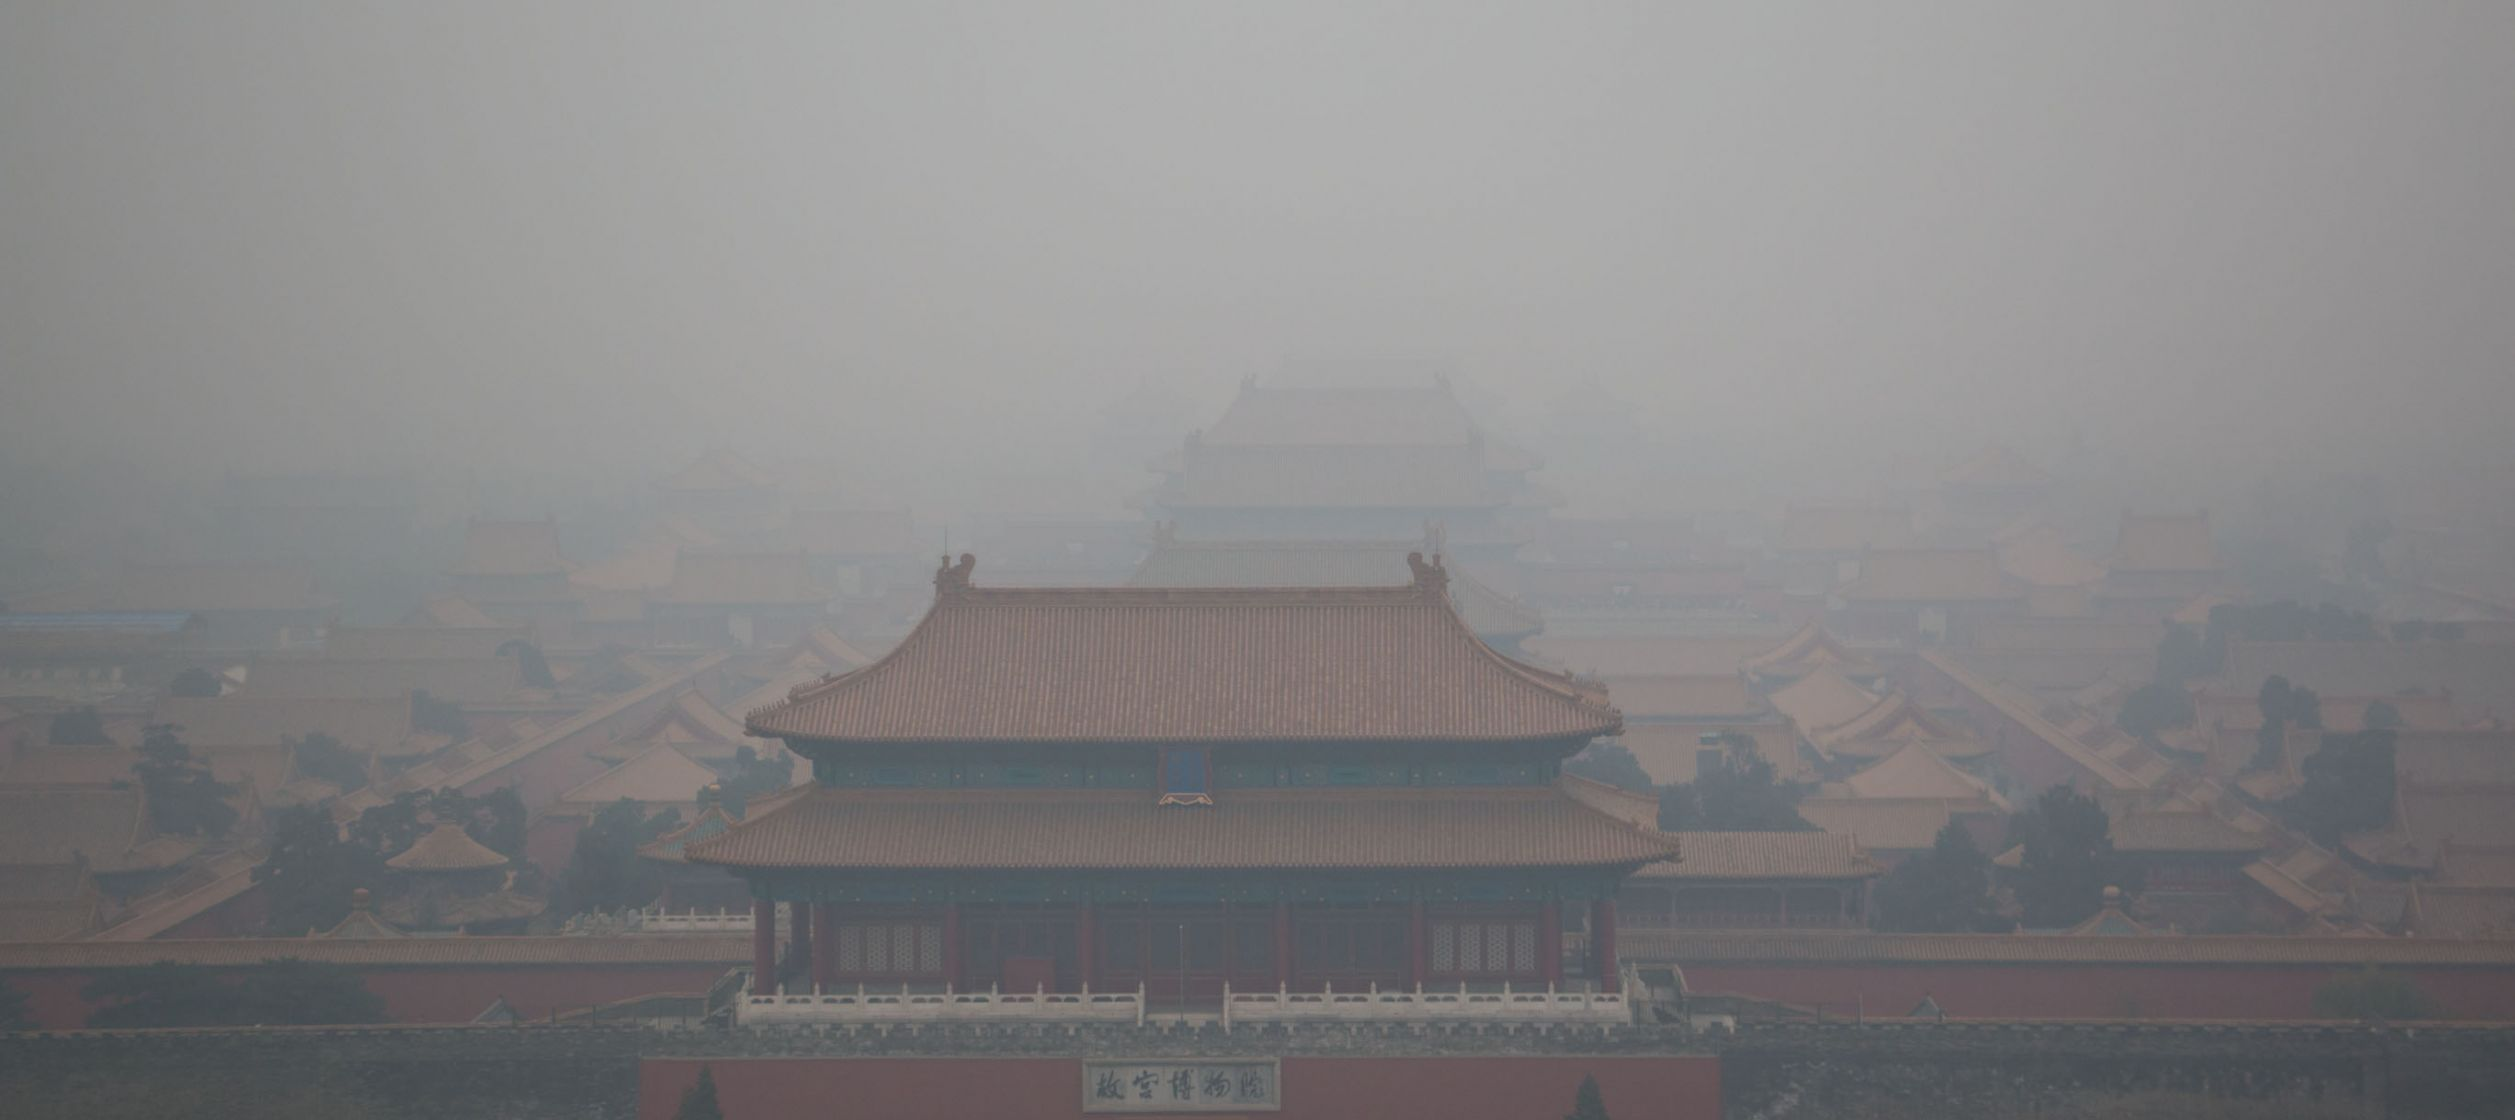 Forbidden city under the smog